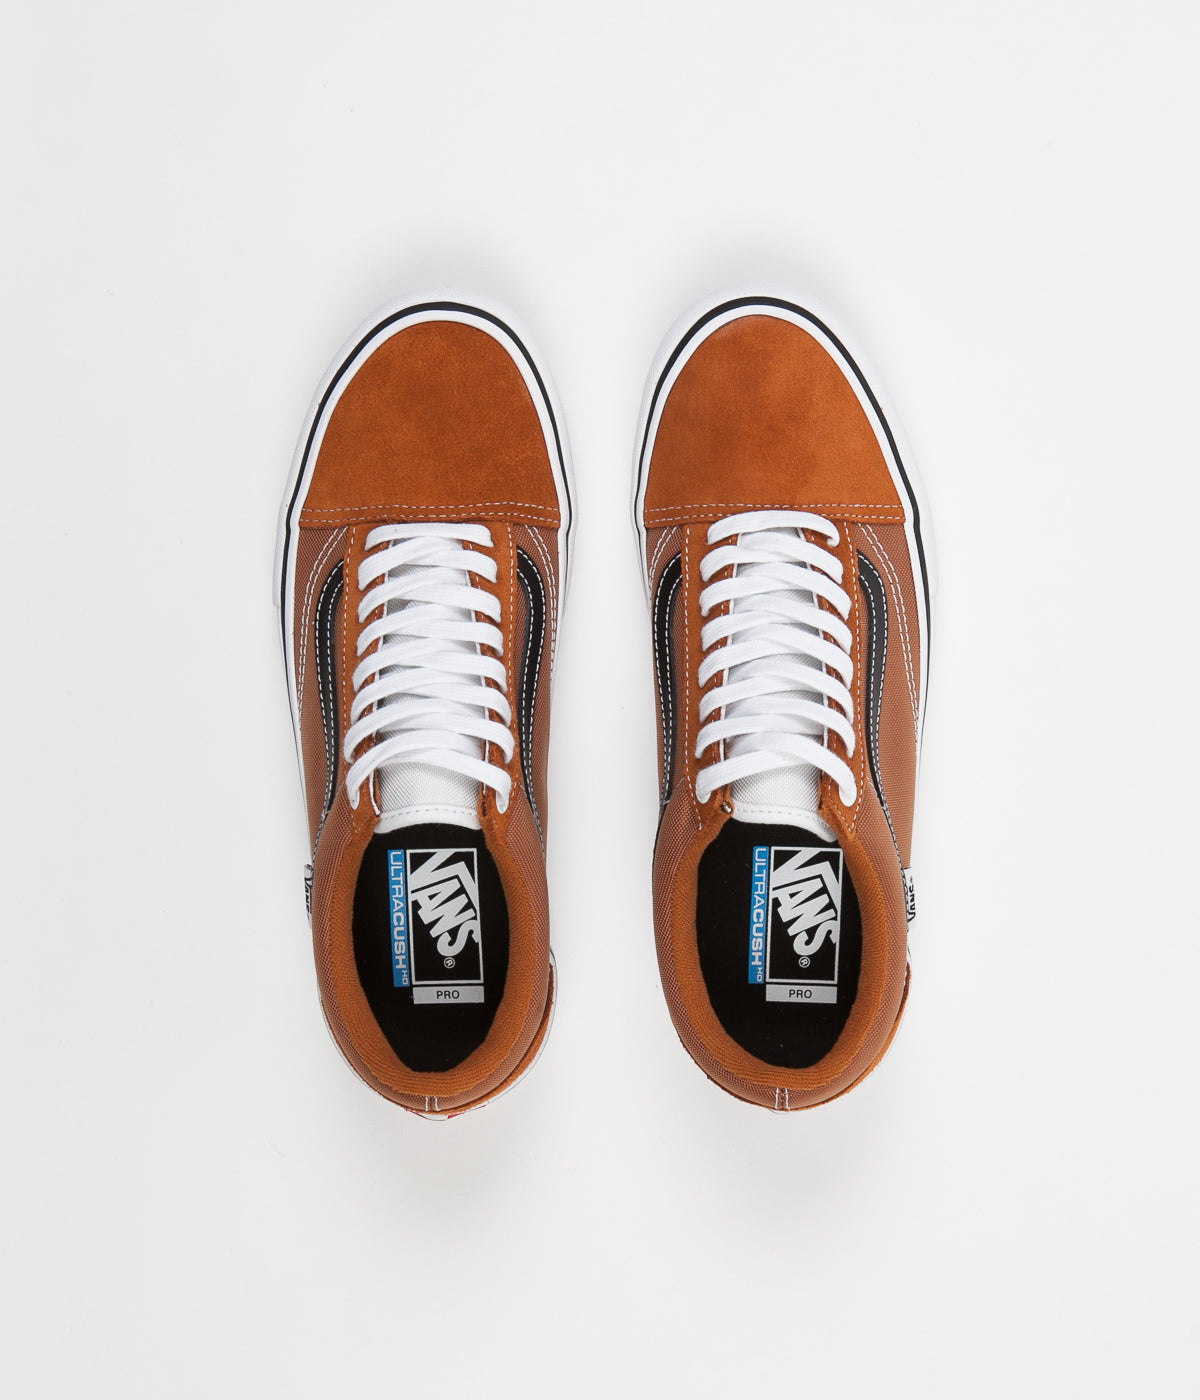 7d686fac8aba ... Vans Old Skool Pro Shoes - Glazed Ginger   Black   White ...